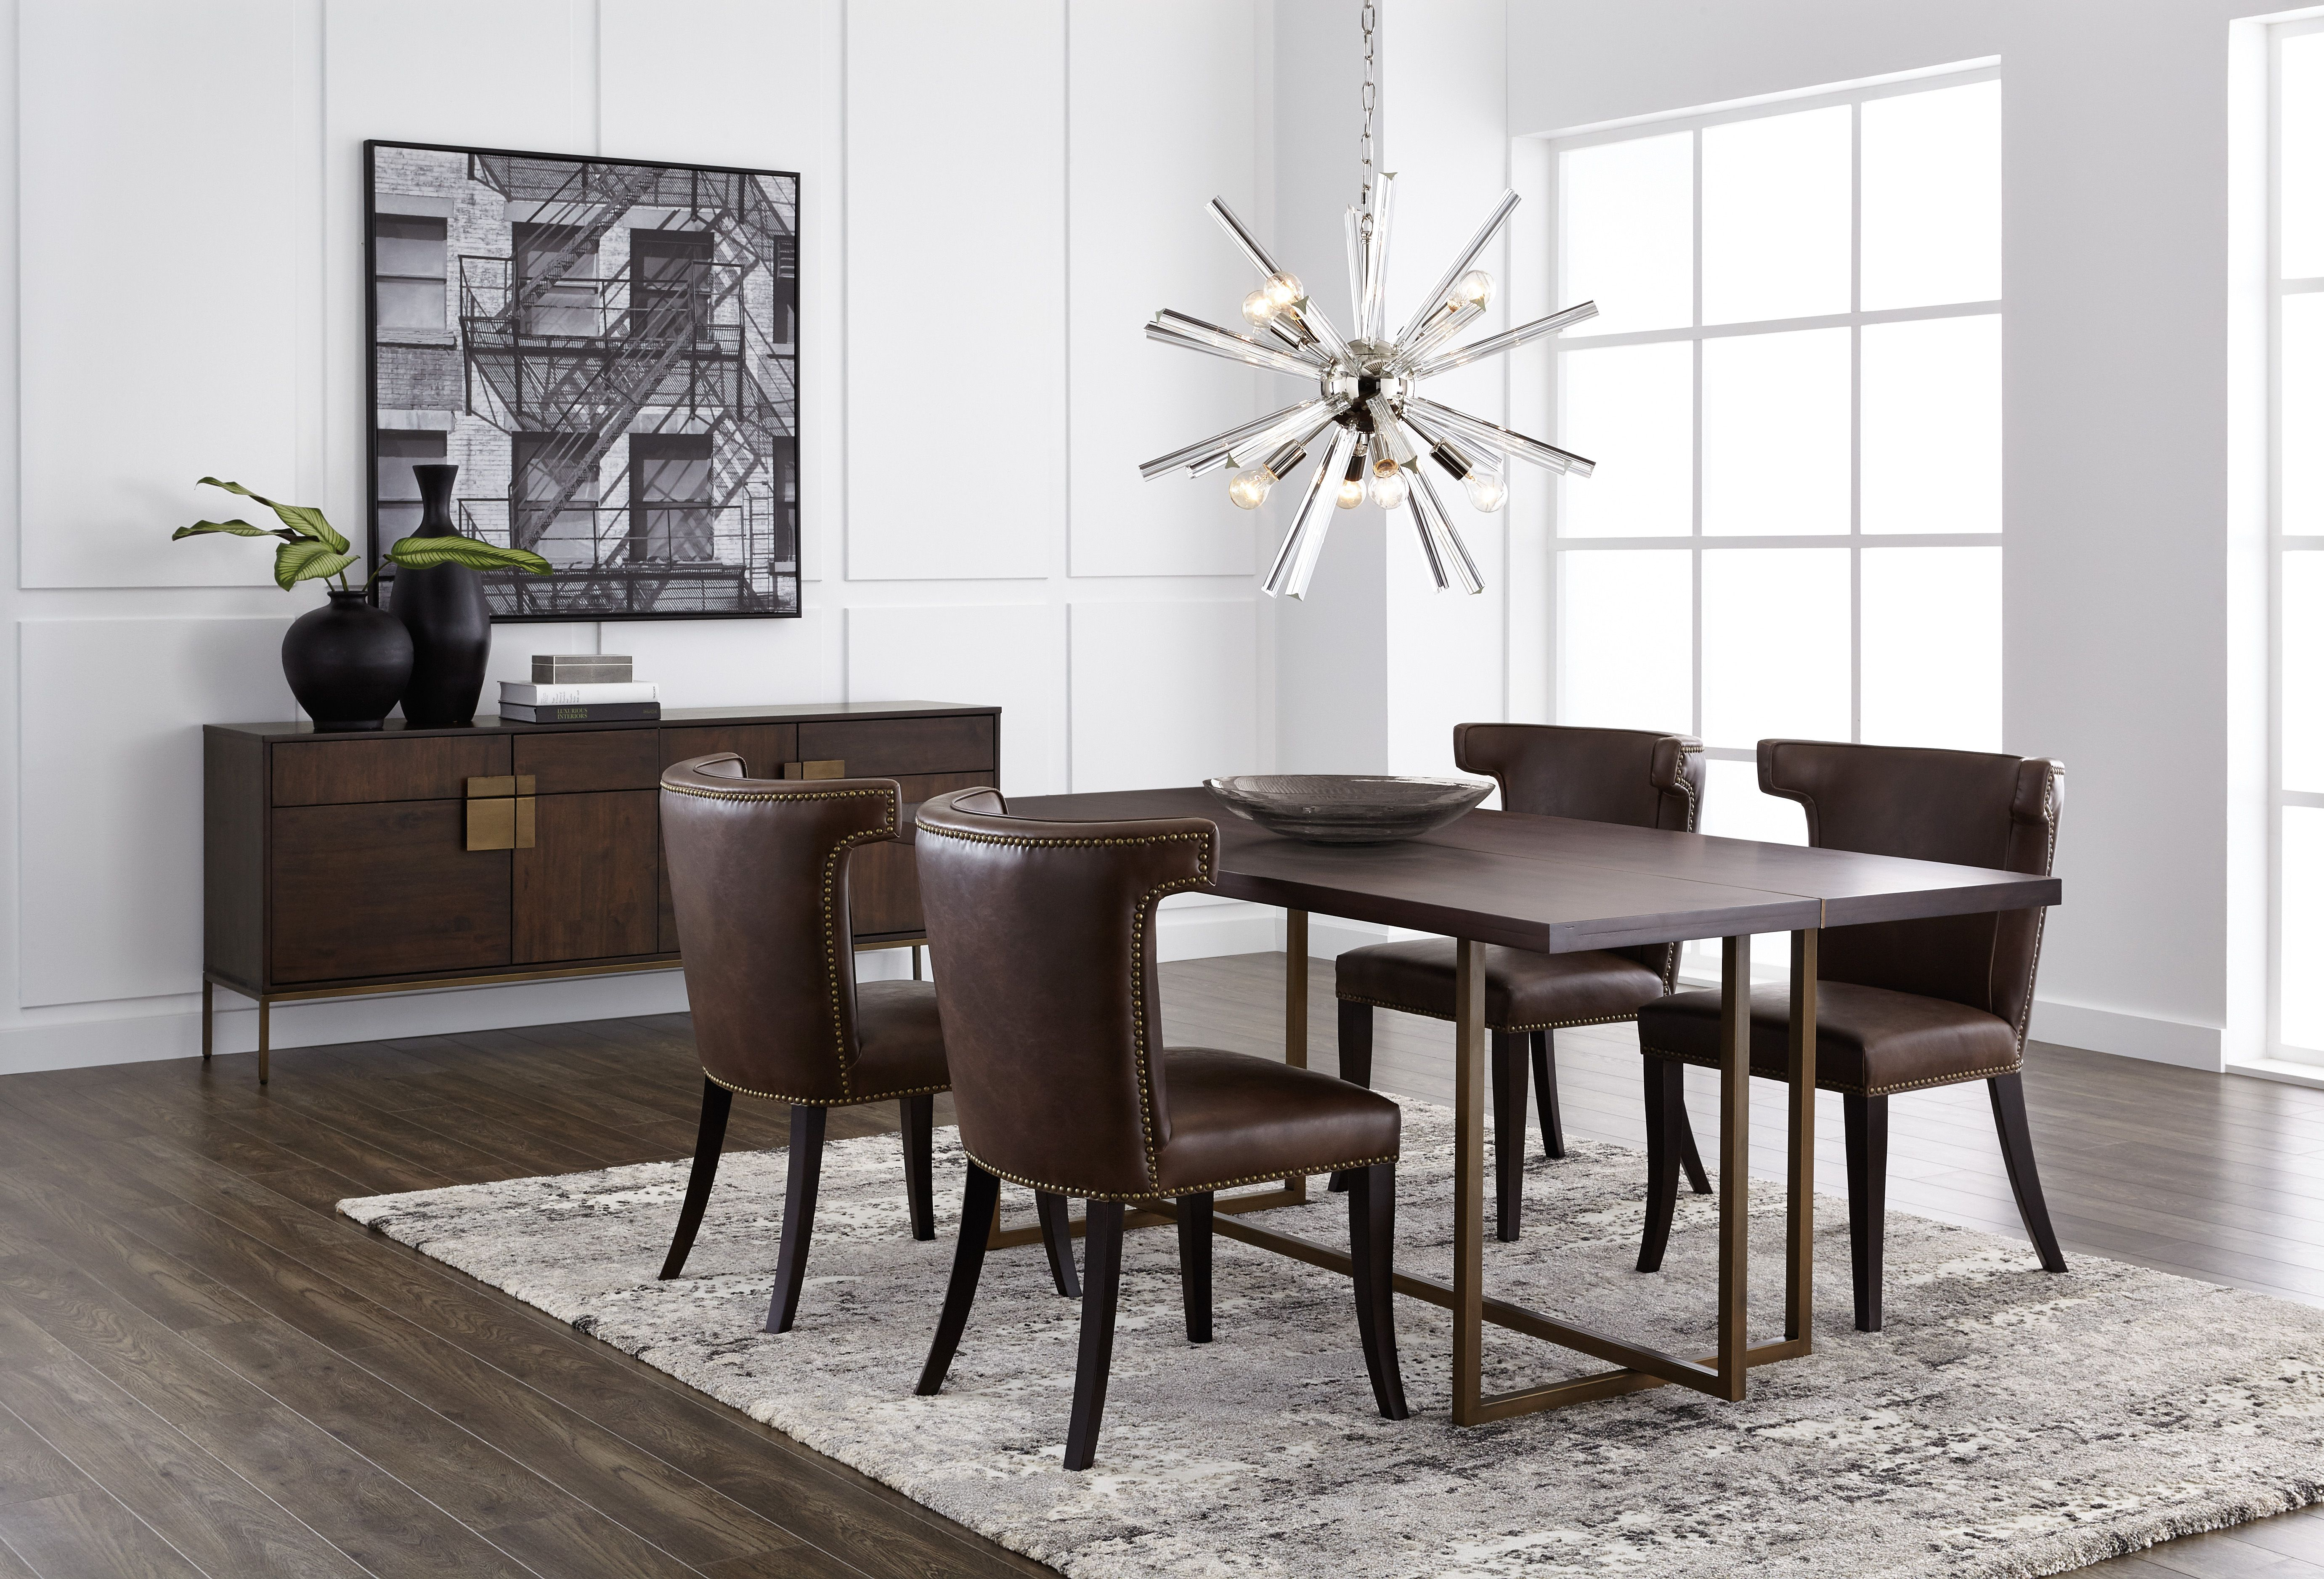 Stunning jade dining table made with acacia wood veneer and antique brass frame